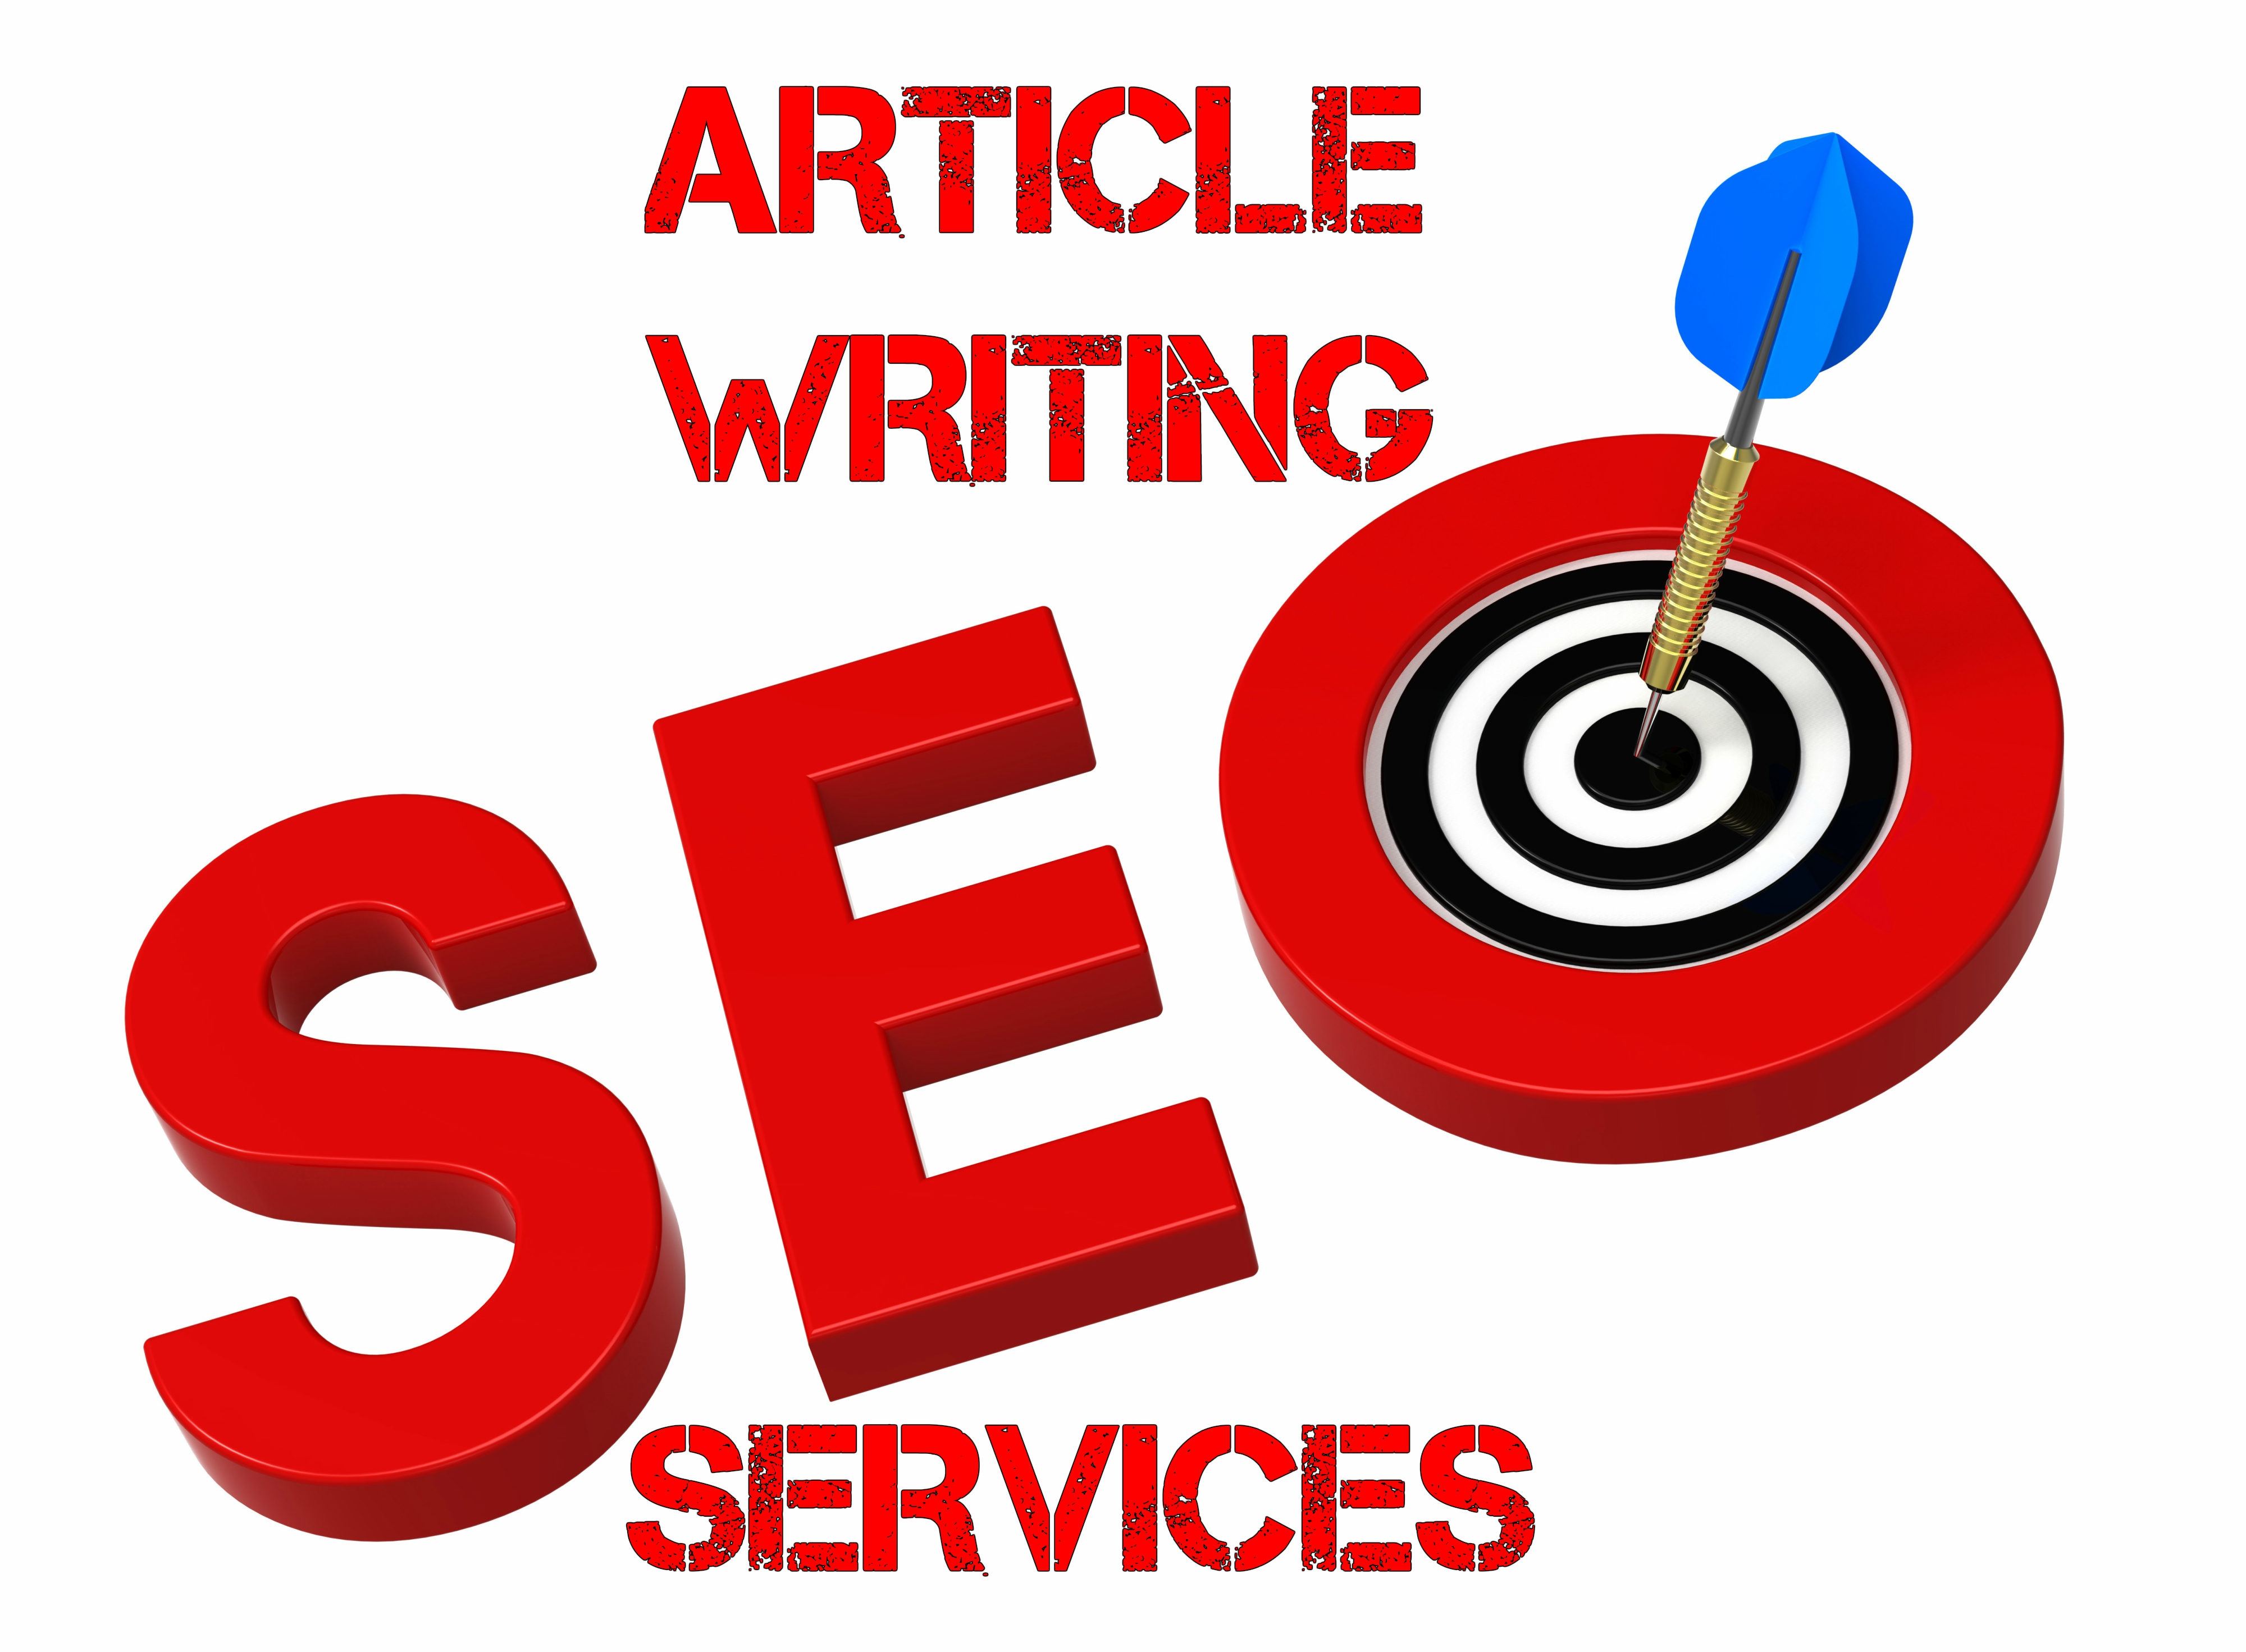 500+ Words Article Writing-Content Writing-Blog Writing